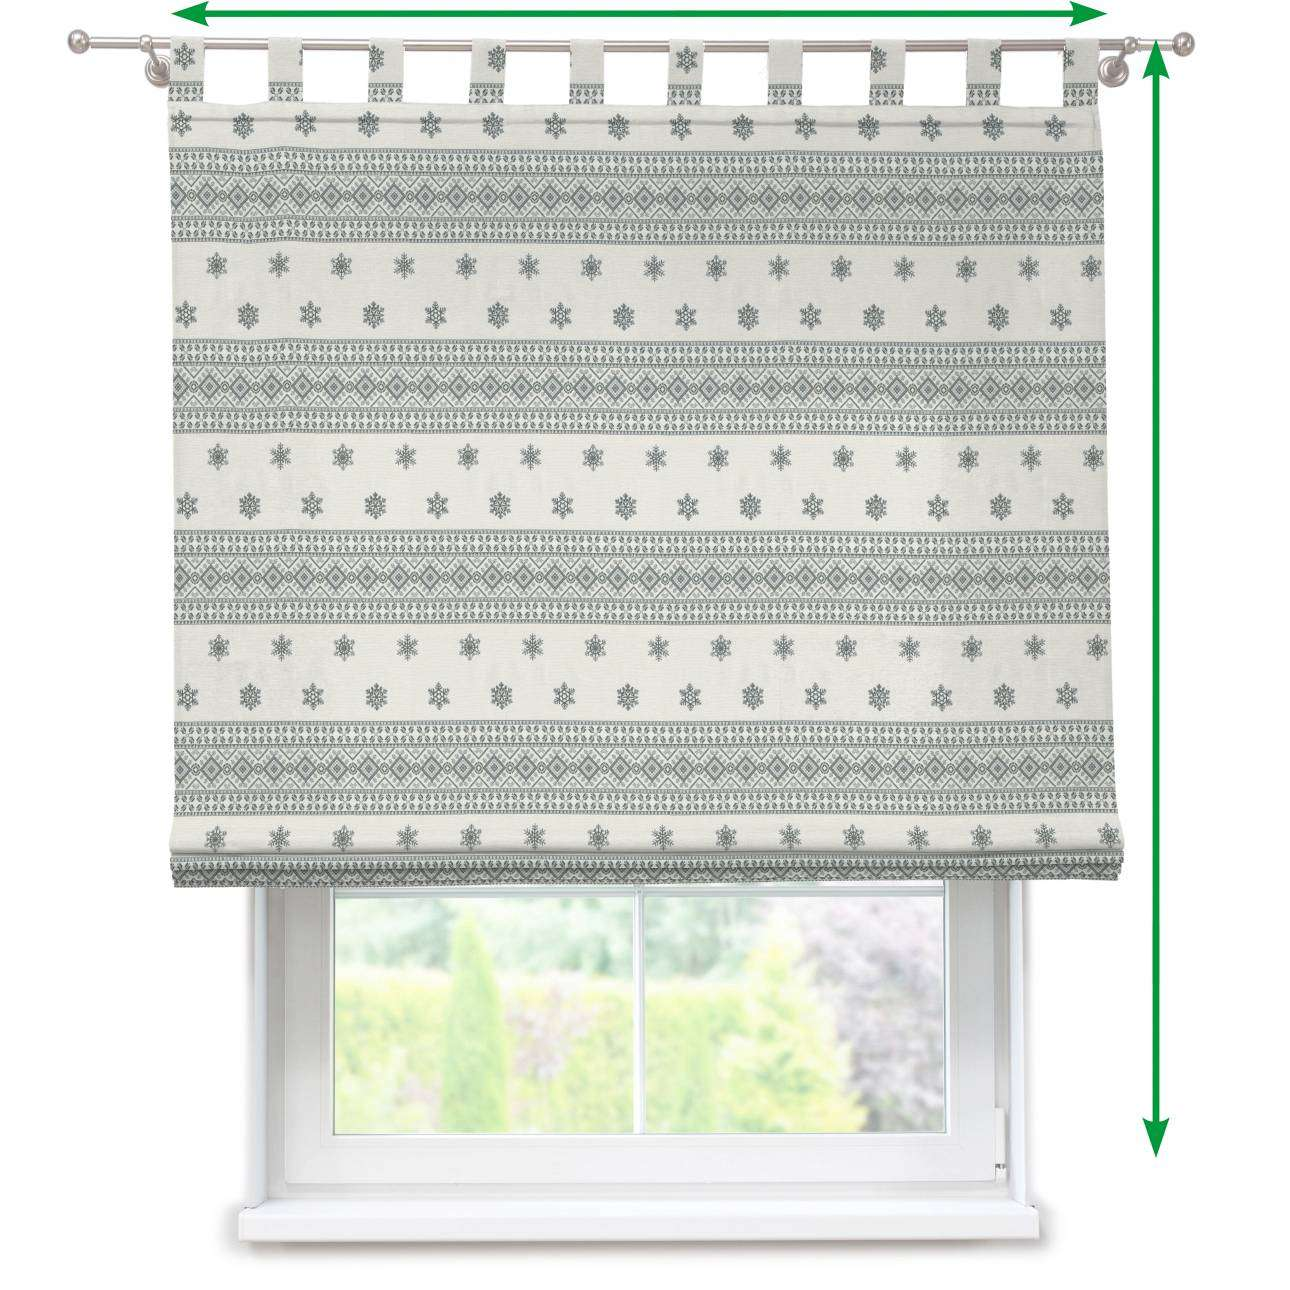 Verona tab top roman blind in collection Christmas , fabric: 630-25